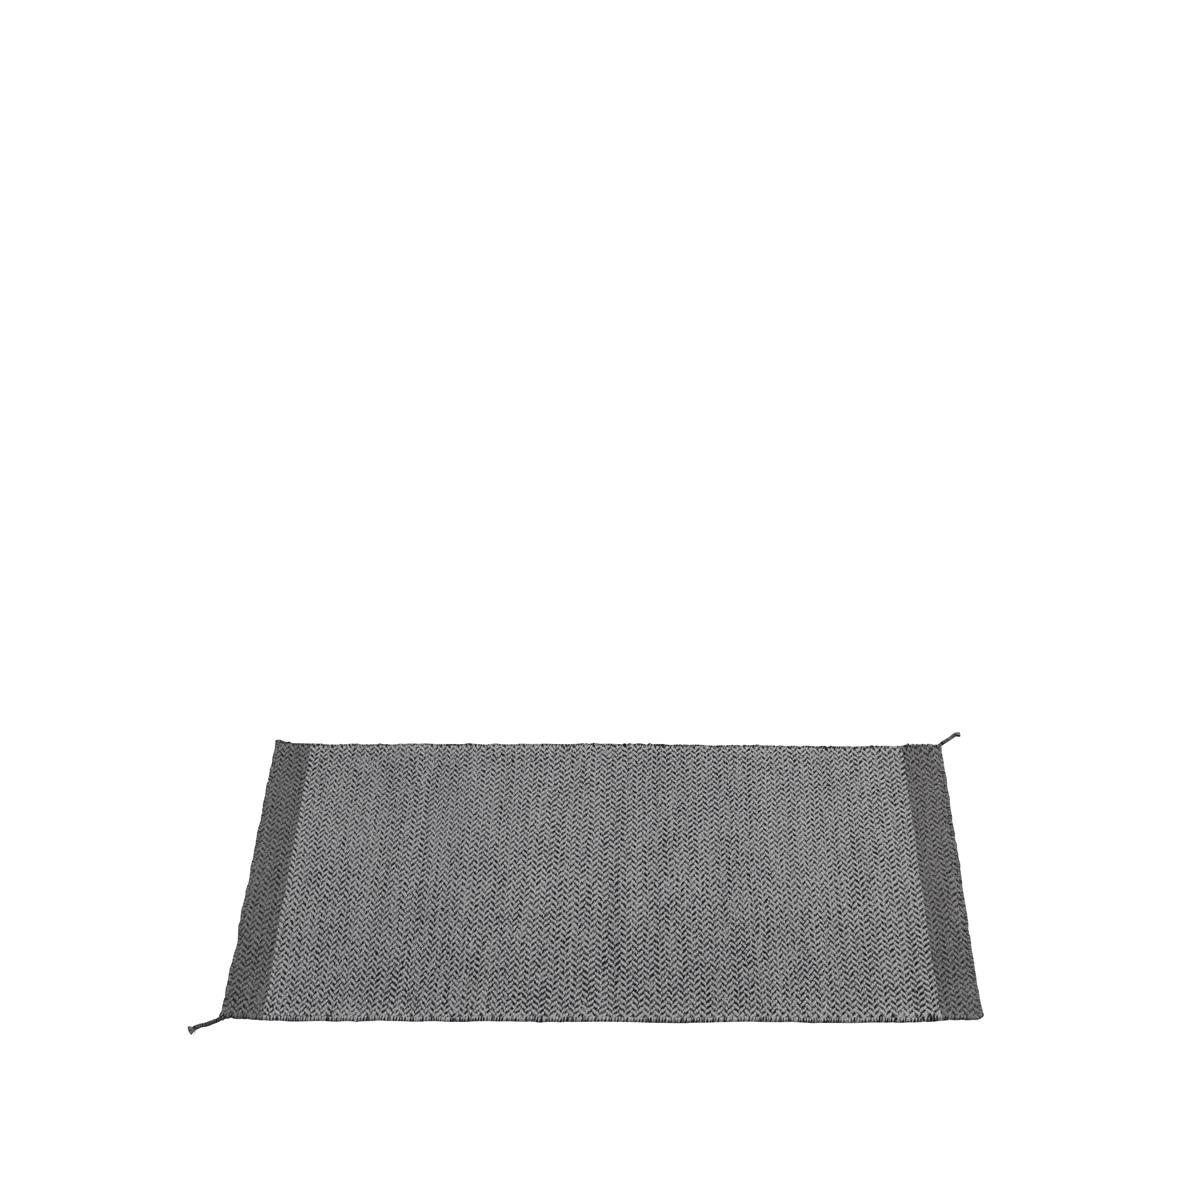 Ply Rug i 170 X 240 cm, Dark Grey